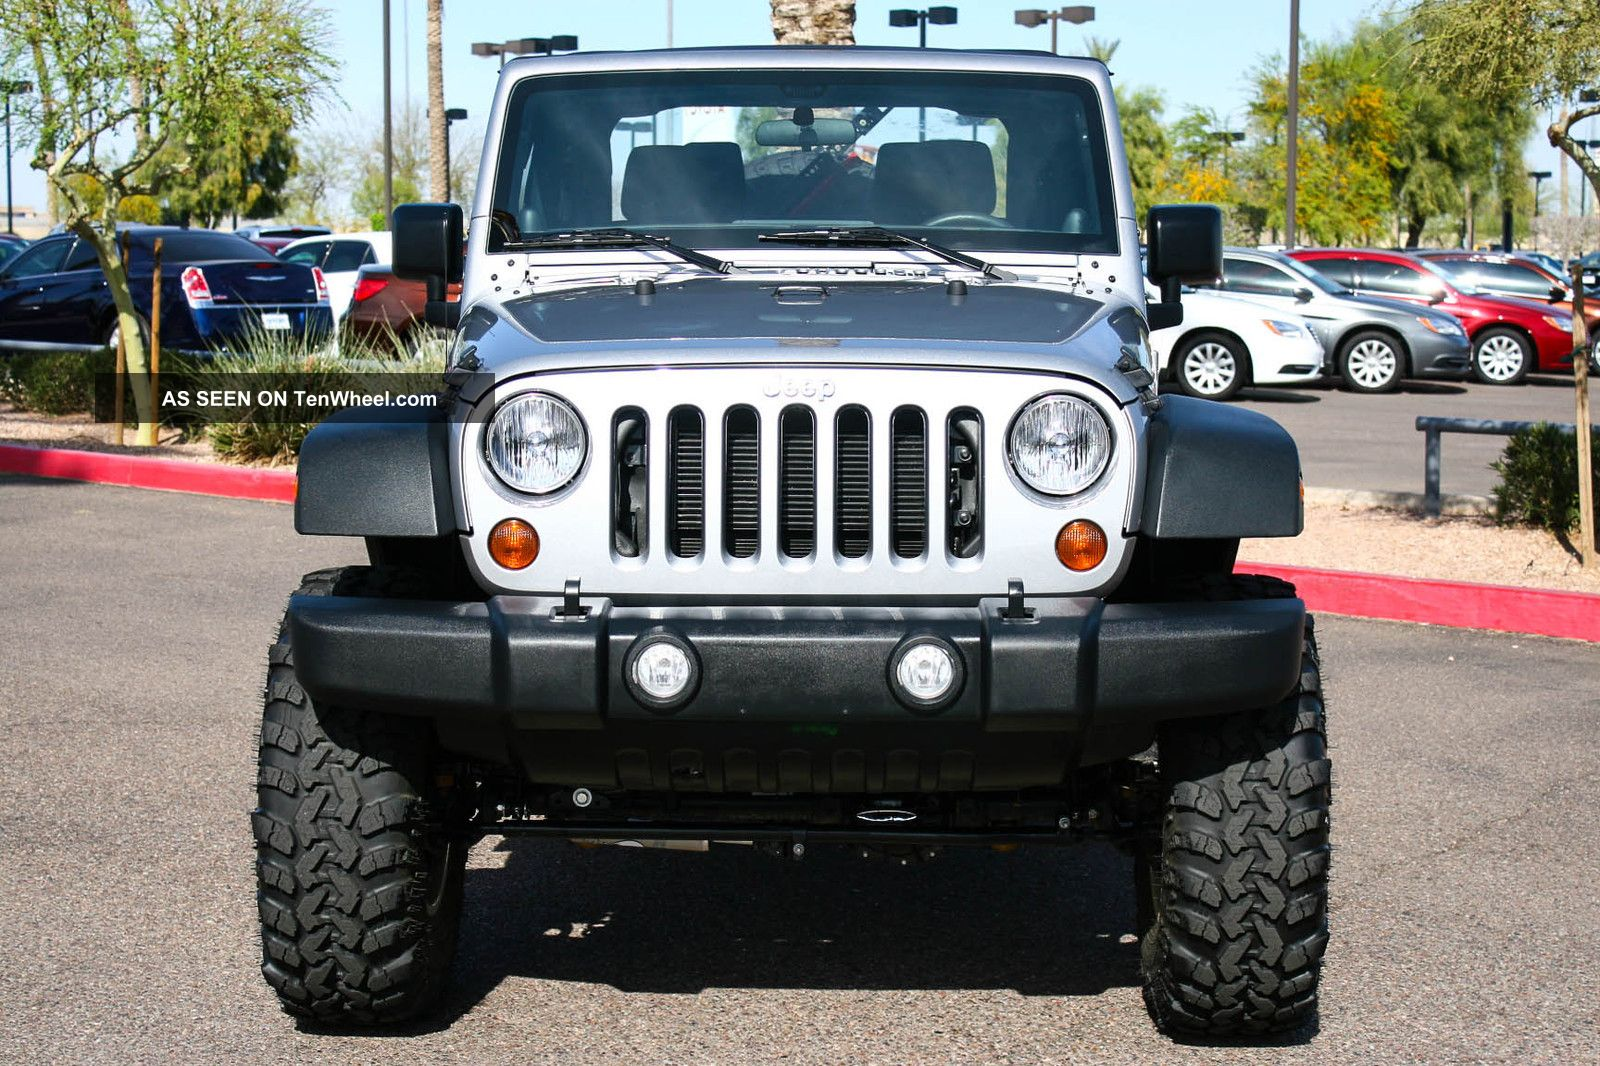 2013 jeep wrangler sport sport utility 2 door 3 6l wrangler photo 2. Cars Review. Best American Auto & Cars Review